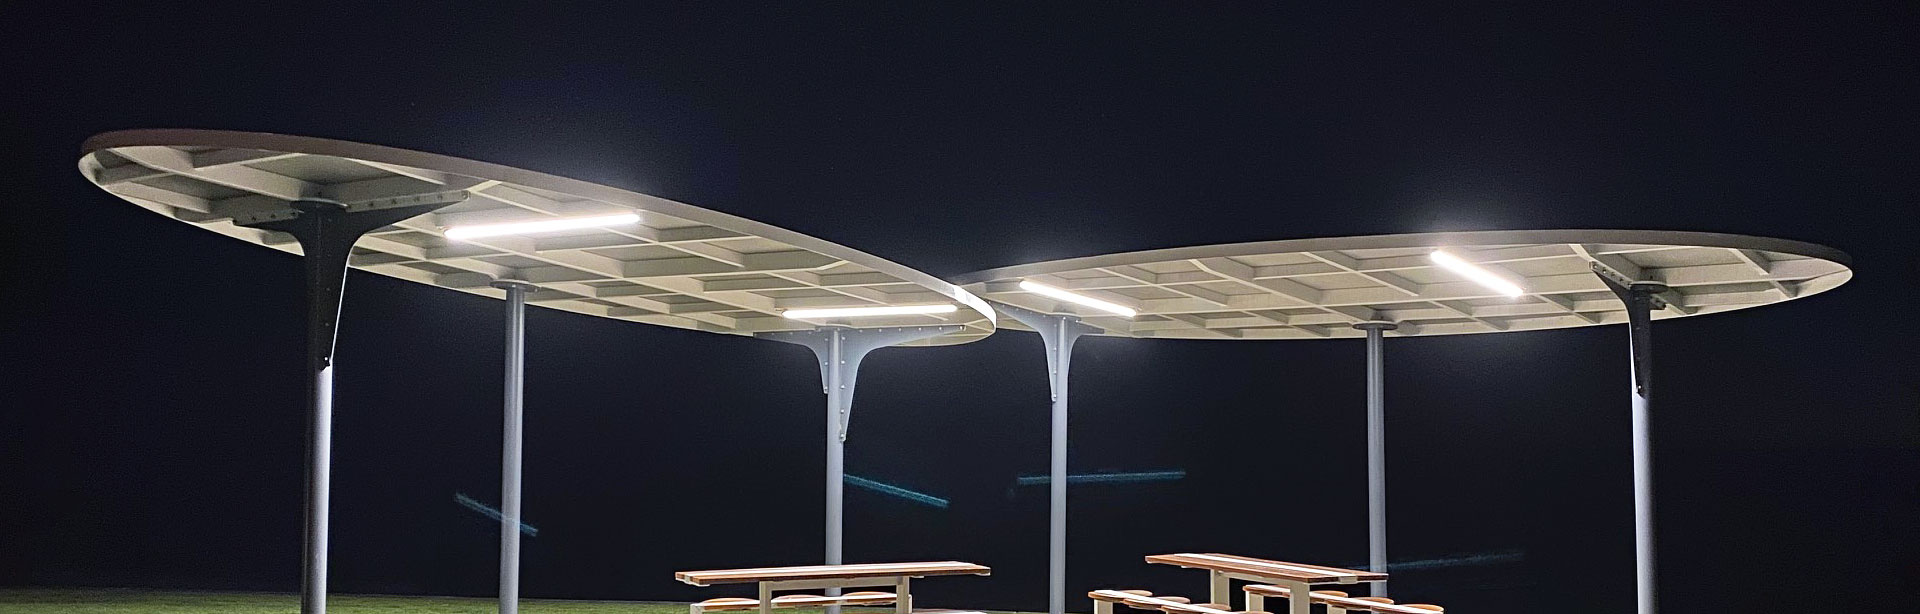 Max Mini UG is a compact and understated linear architectural luminaire. At 36.5x30mm in size and available in various lineal lengths, Max Mini UG is offered with a uniform glowdiffuser where no LEDs are visible along the length of the luminaire.